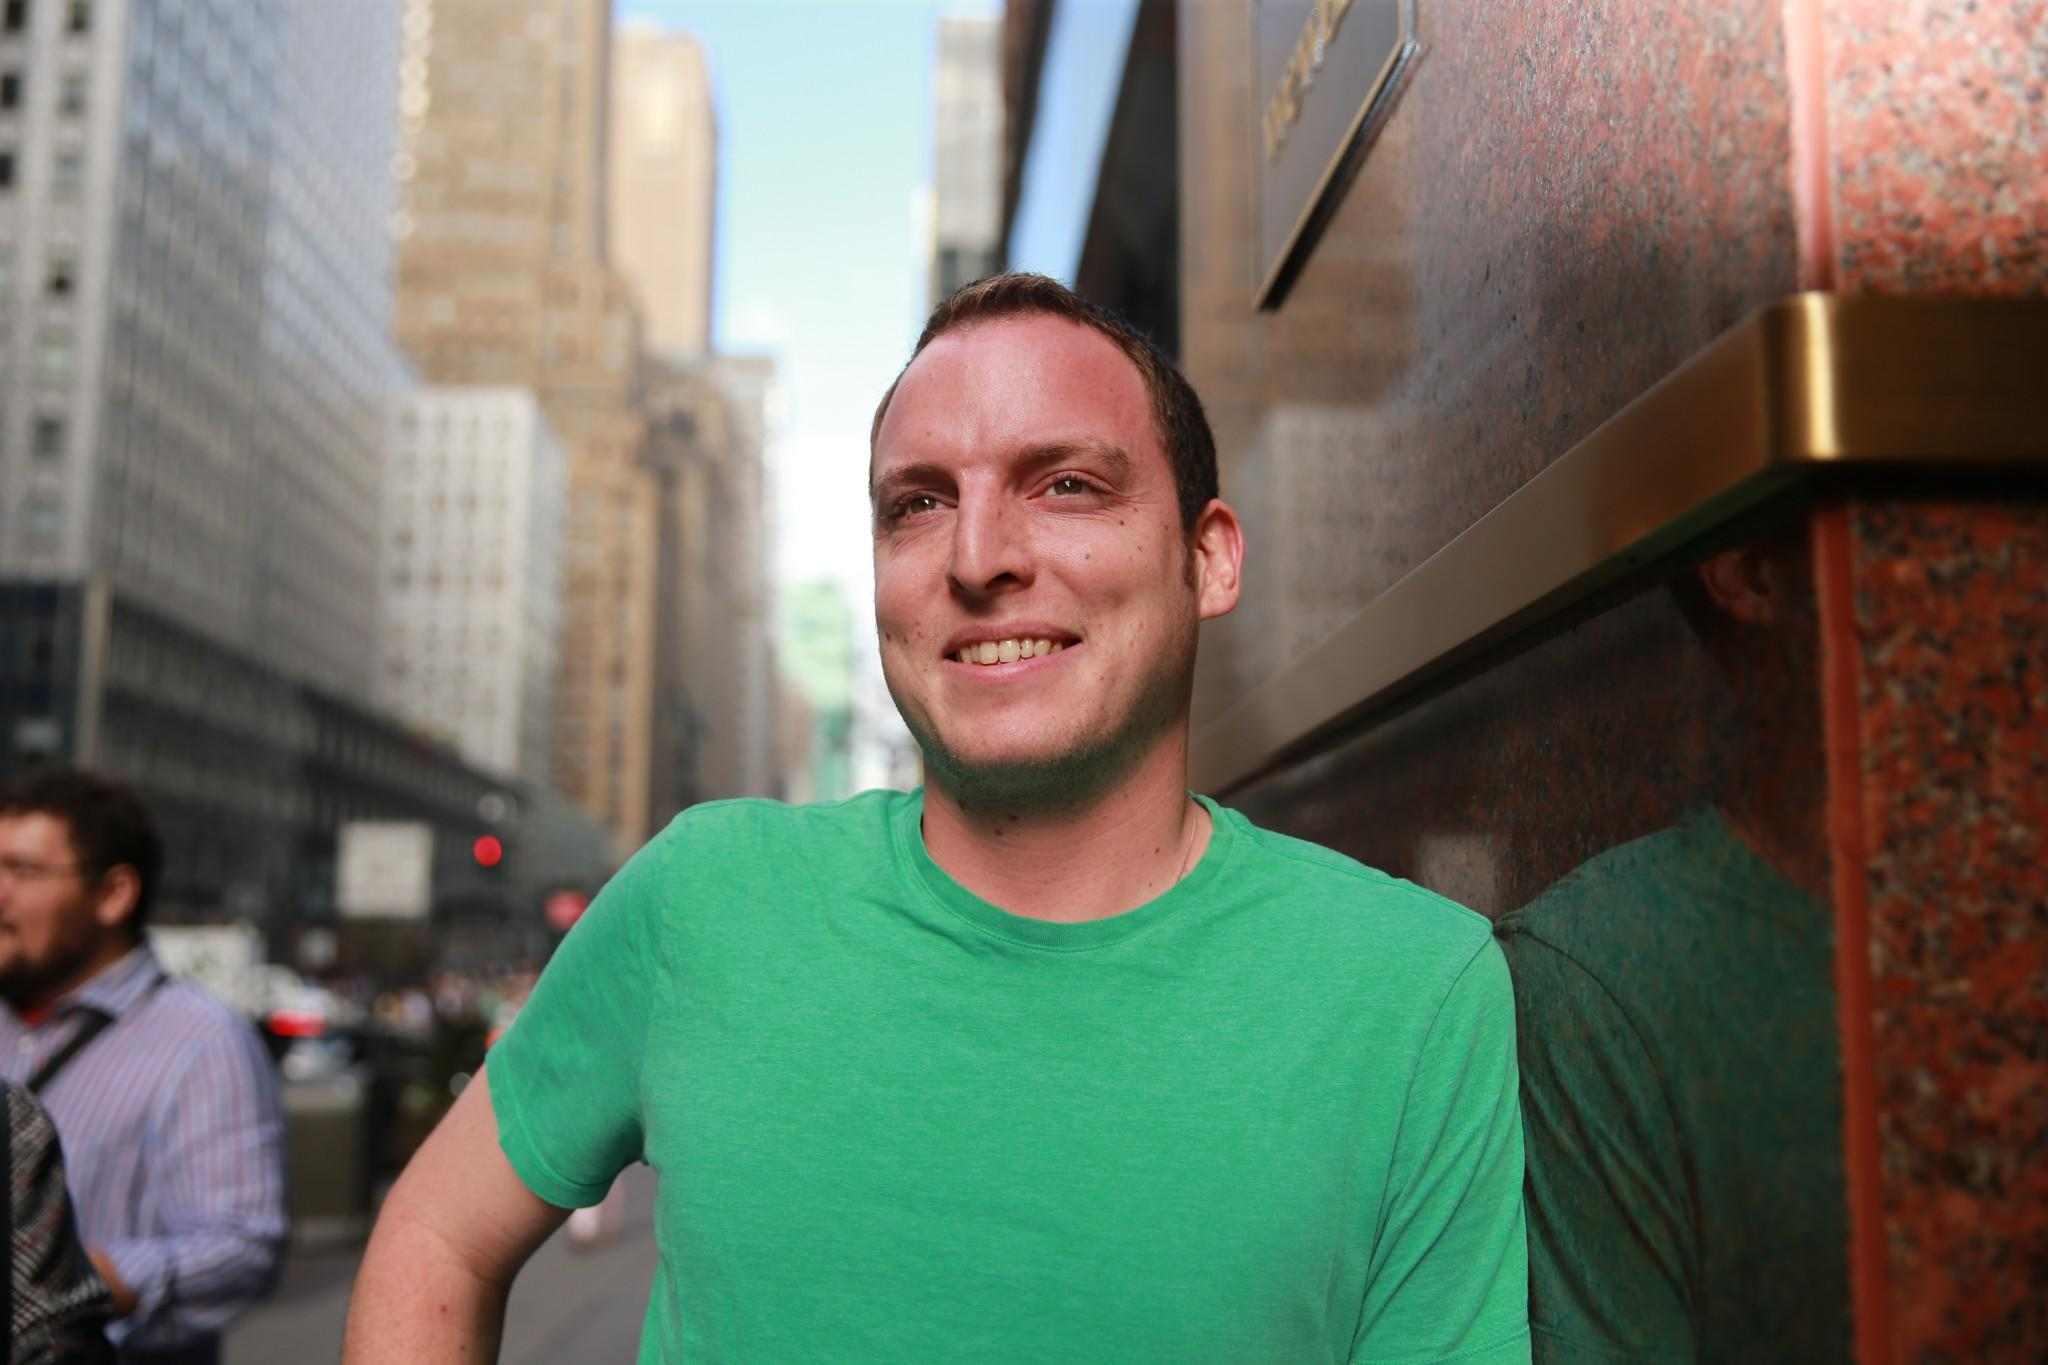 Issac Saul poses for a photo outside his office in New York City.